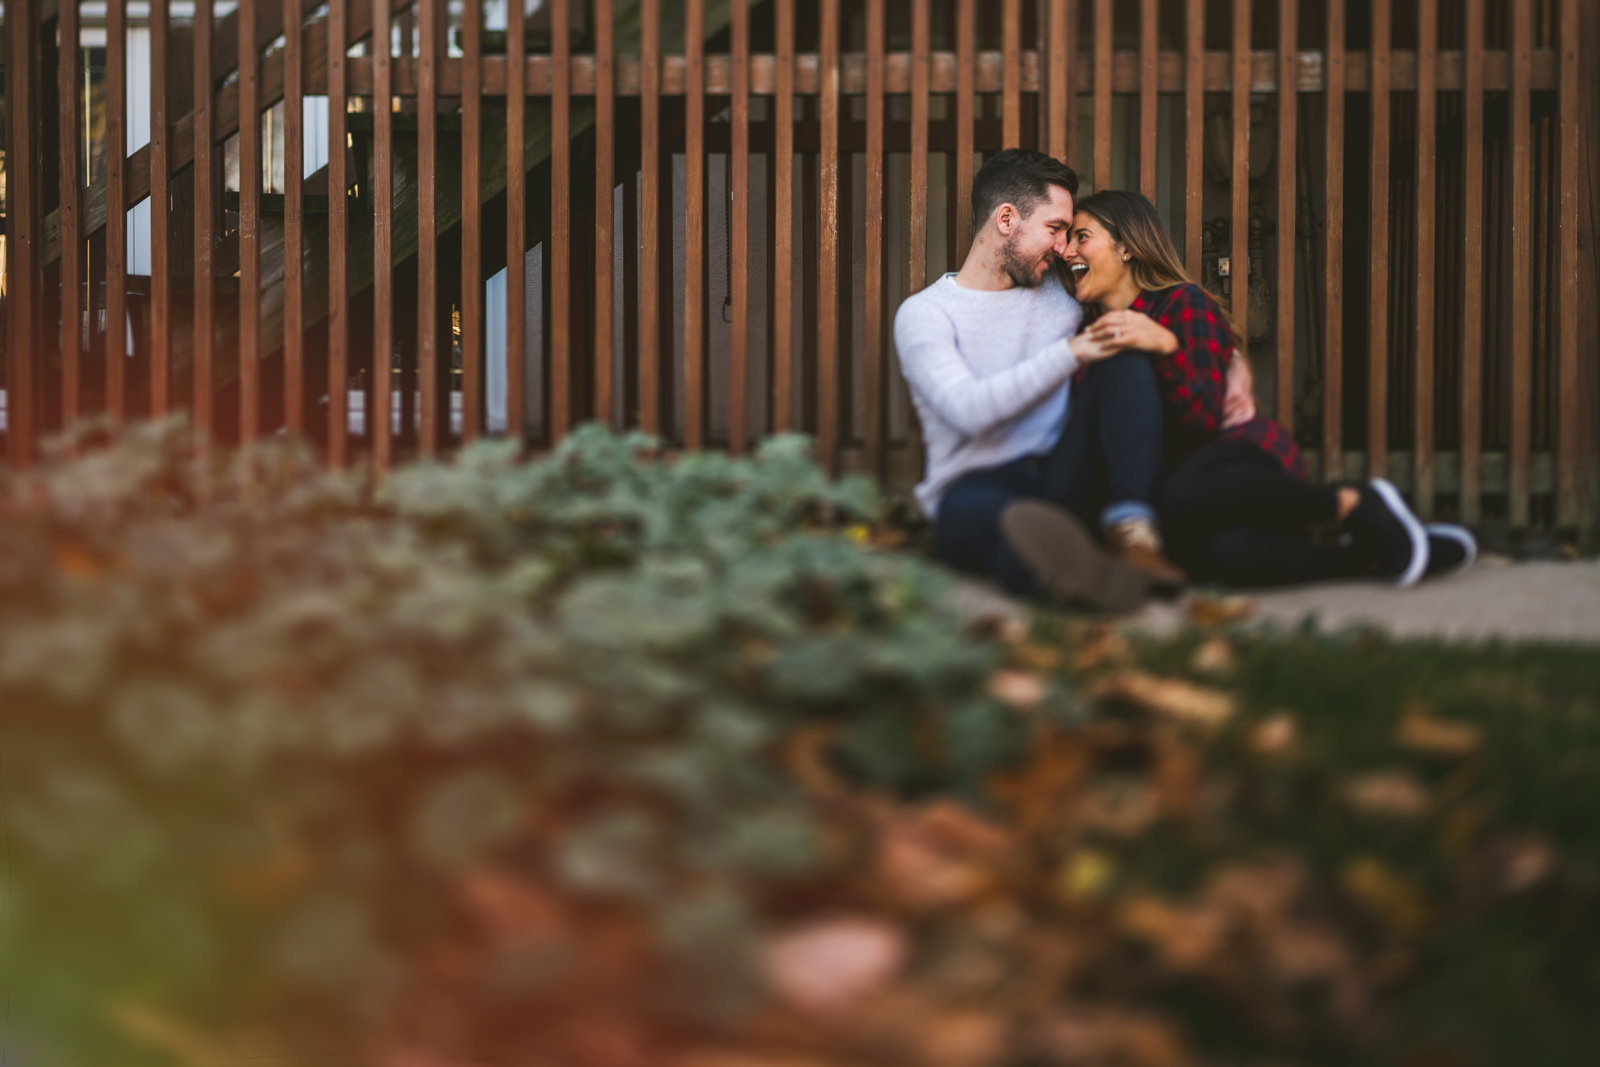 Joanna + Jamie // Engagement session in West Lakeview and Lincoln Park